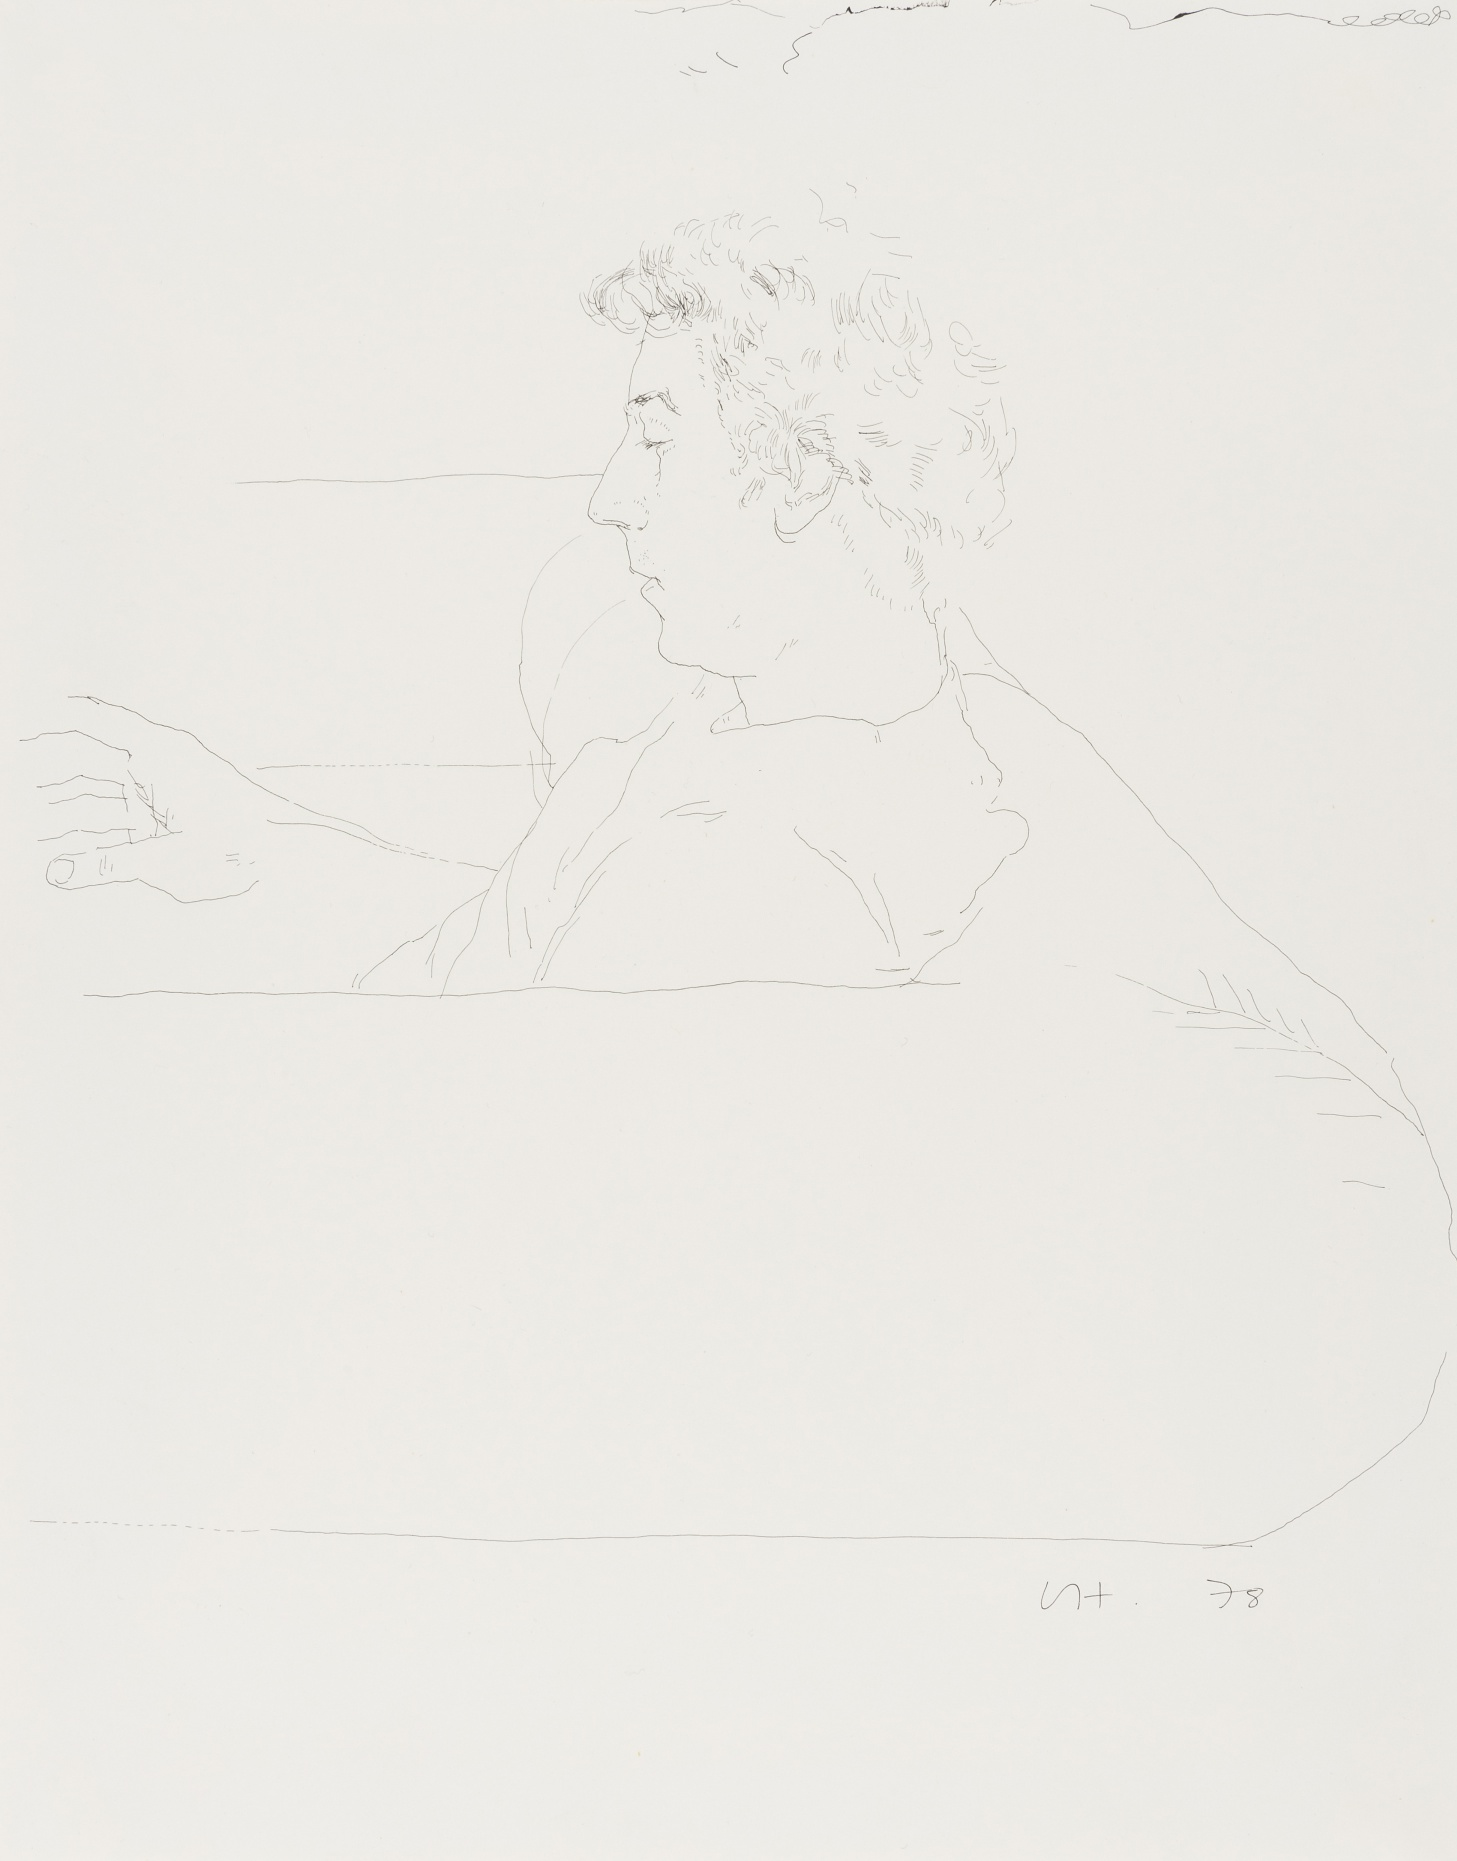 David Hockney, Gregory on a sofa, India ink on paper, 1978, initialled and dated in ink, sheet 35.5 x 27.7 cm (14 x 10 7/8in)Estimate: £25 000-35 000